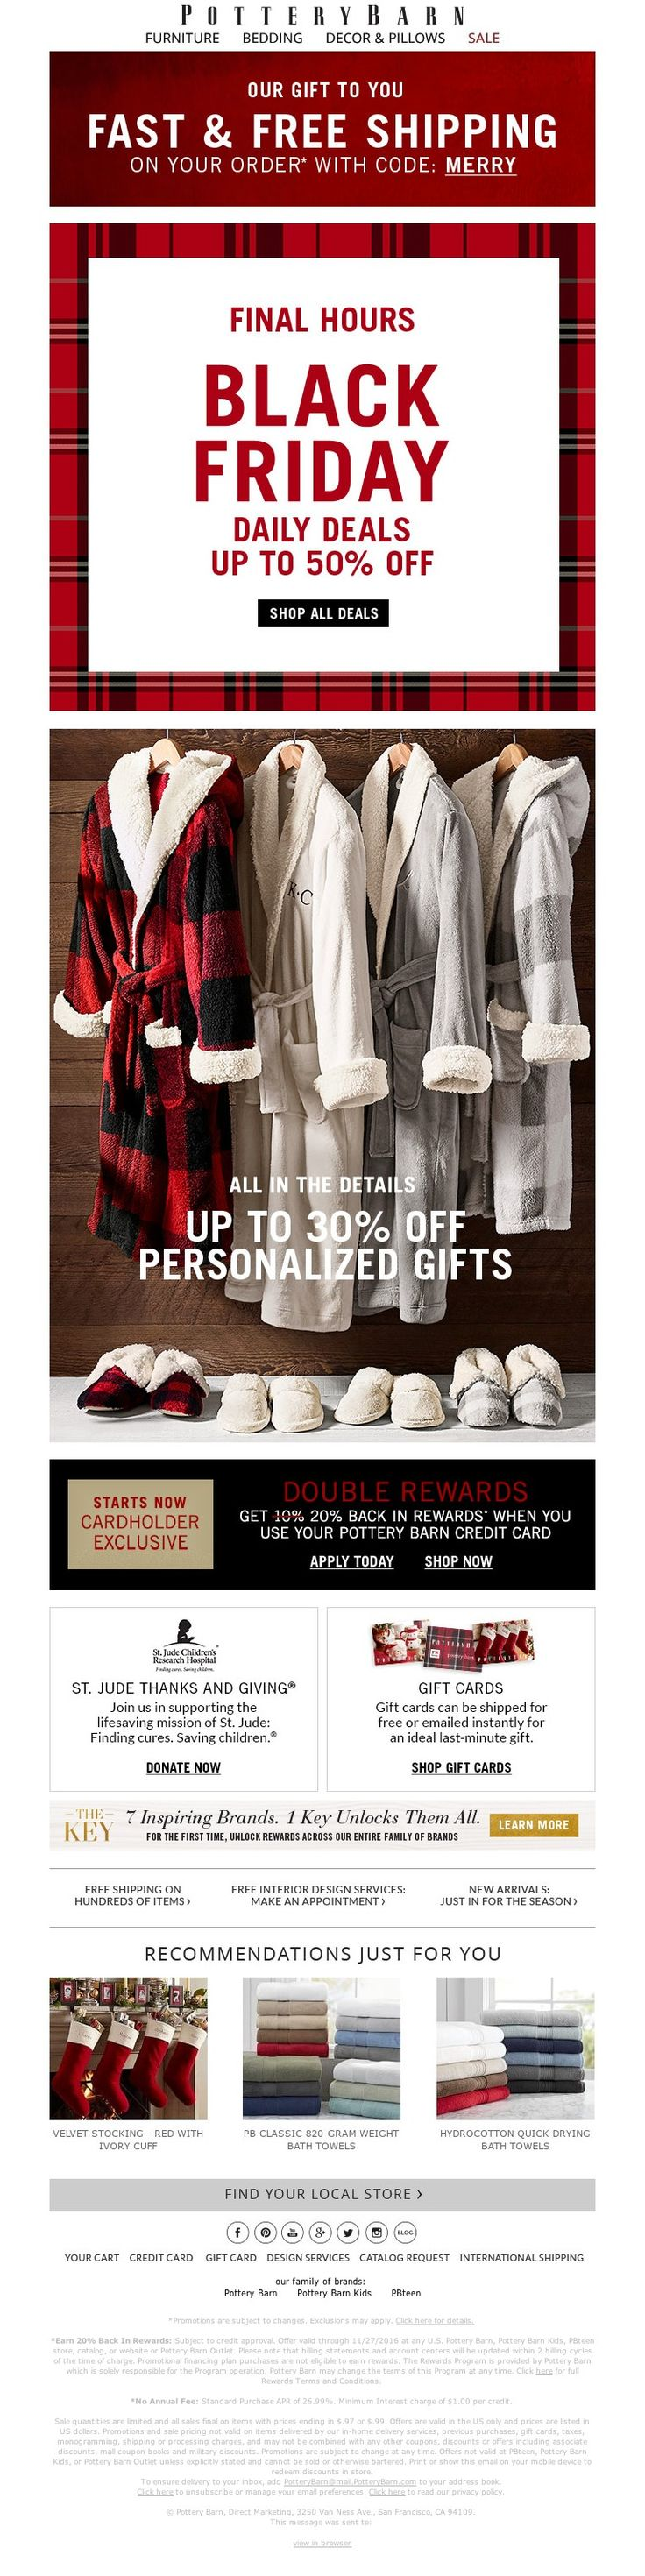 Famed Black Friday Emails Images On Pottery Barn Black Fridaydeals 2017 Does Pottery Barn Have Black Friday Sales New House Designs Pottery Barn Black Friday 2015 Pottery Barn Black Friday Cyber Monda baby Pottery Barn Black Friday